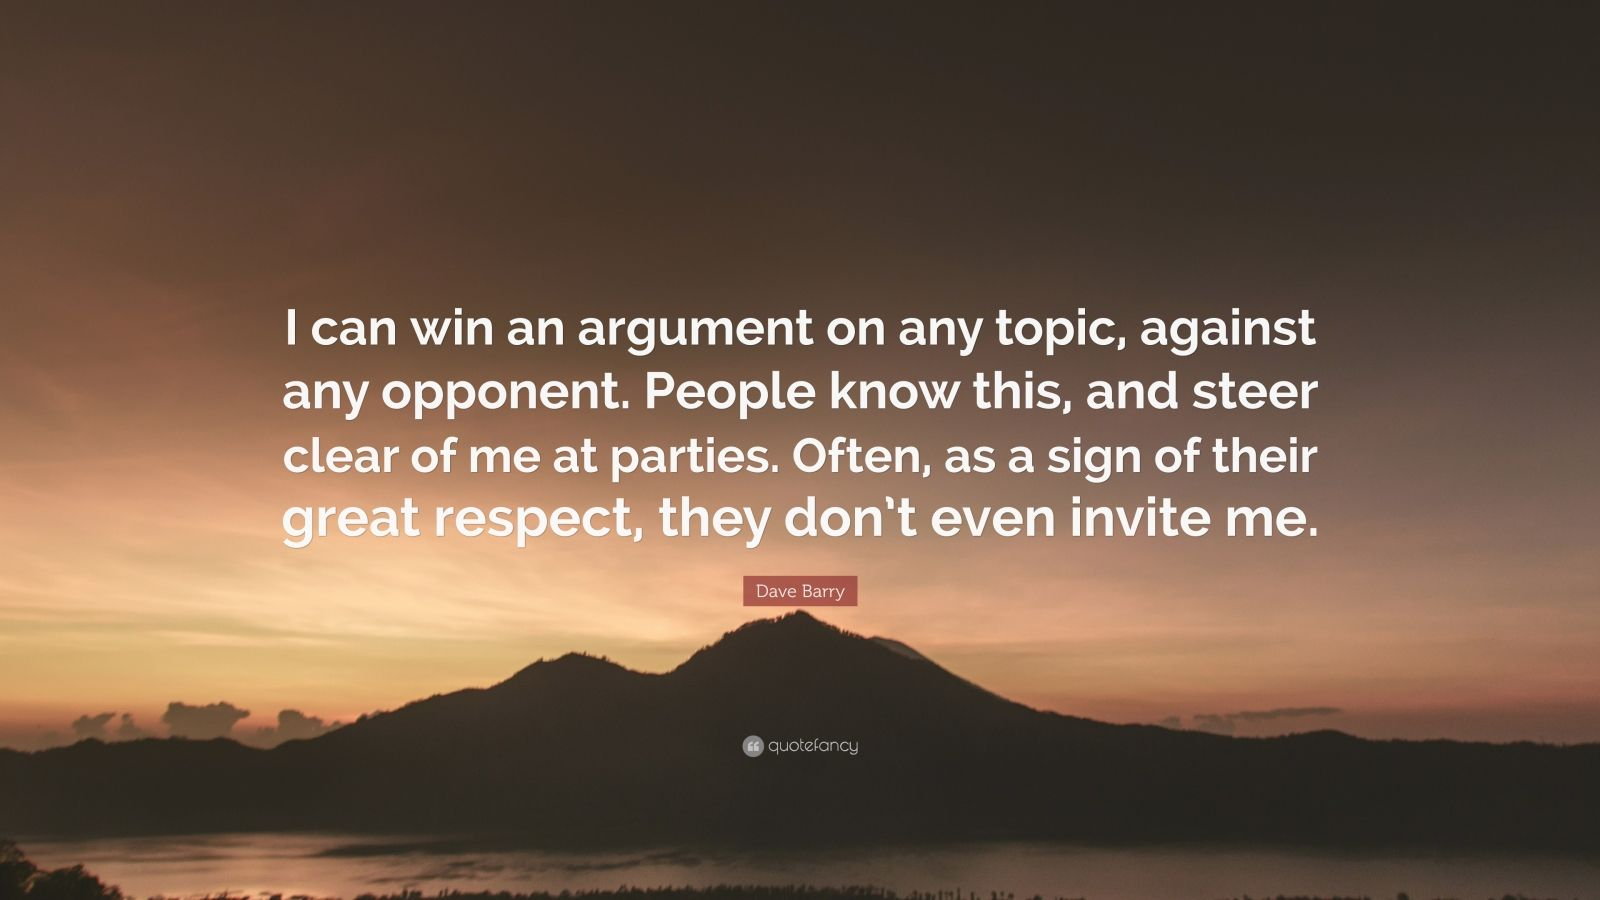 """Dave Barry Quote: """"I can win an argument on any topic, against any opponent. People know this, and steer clear of me at parties. Often, as a sign of their great respect, they don't even invite me."""""""